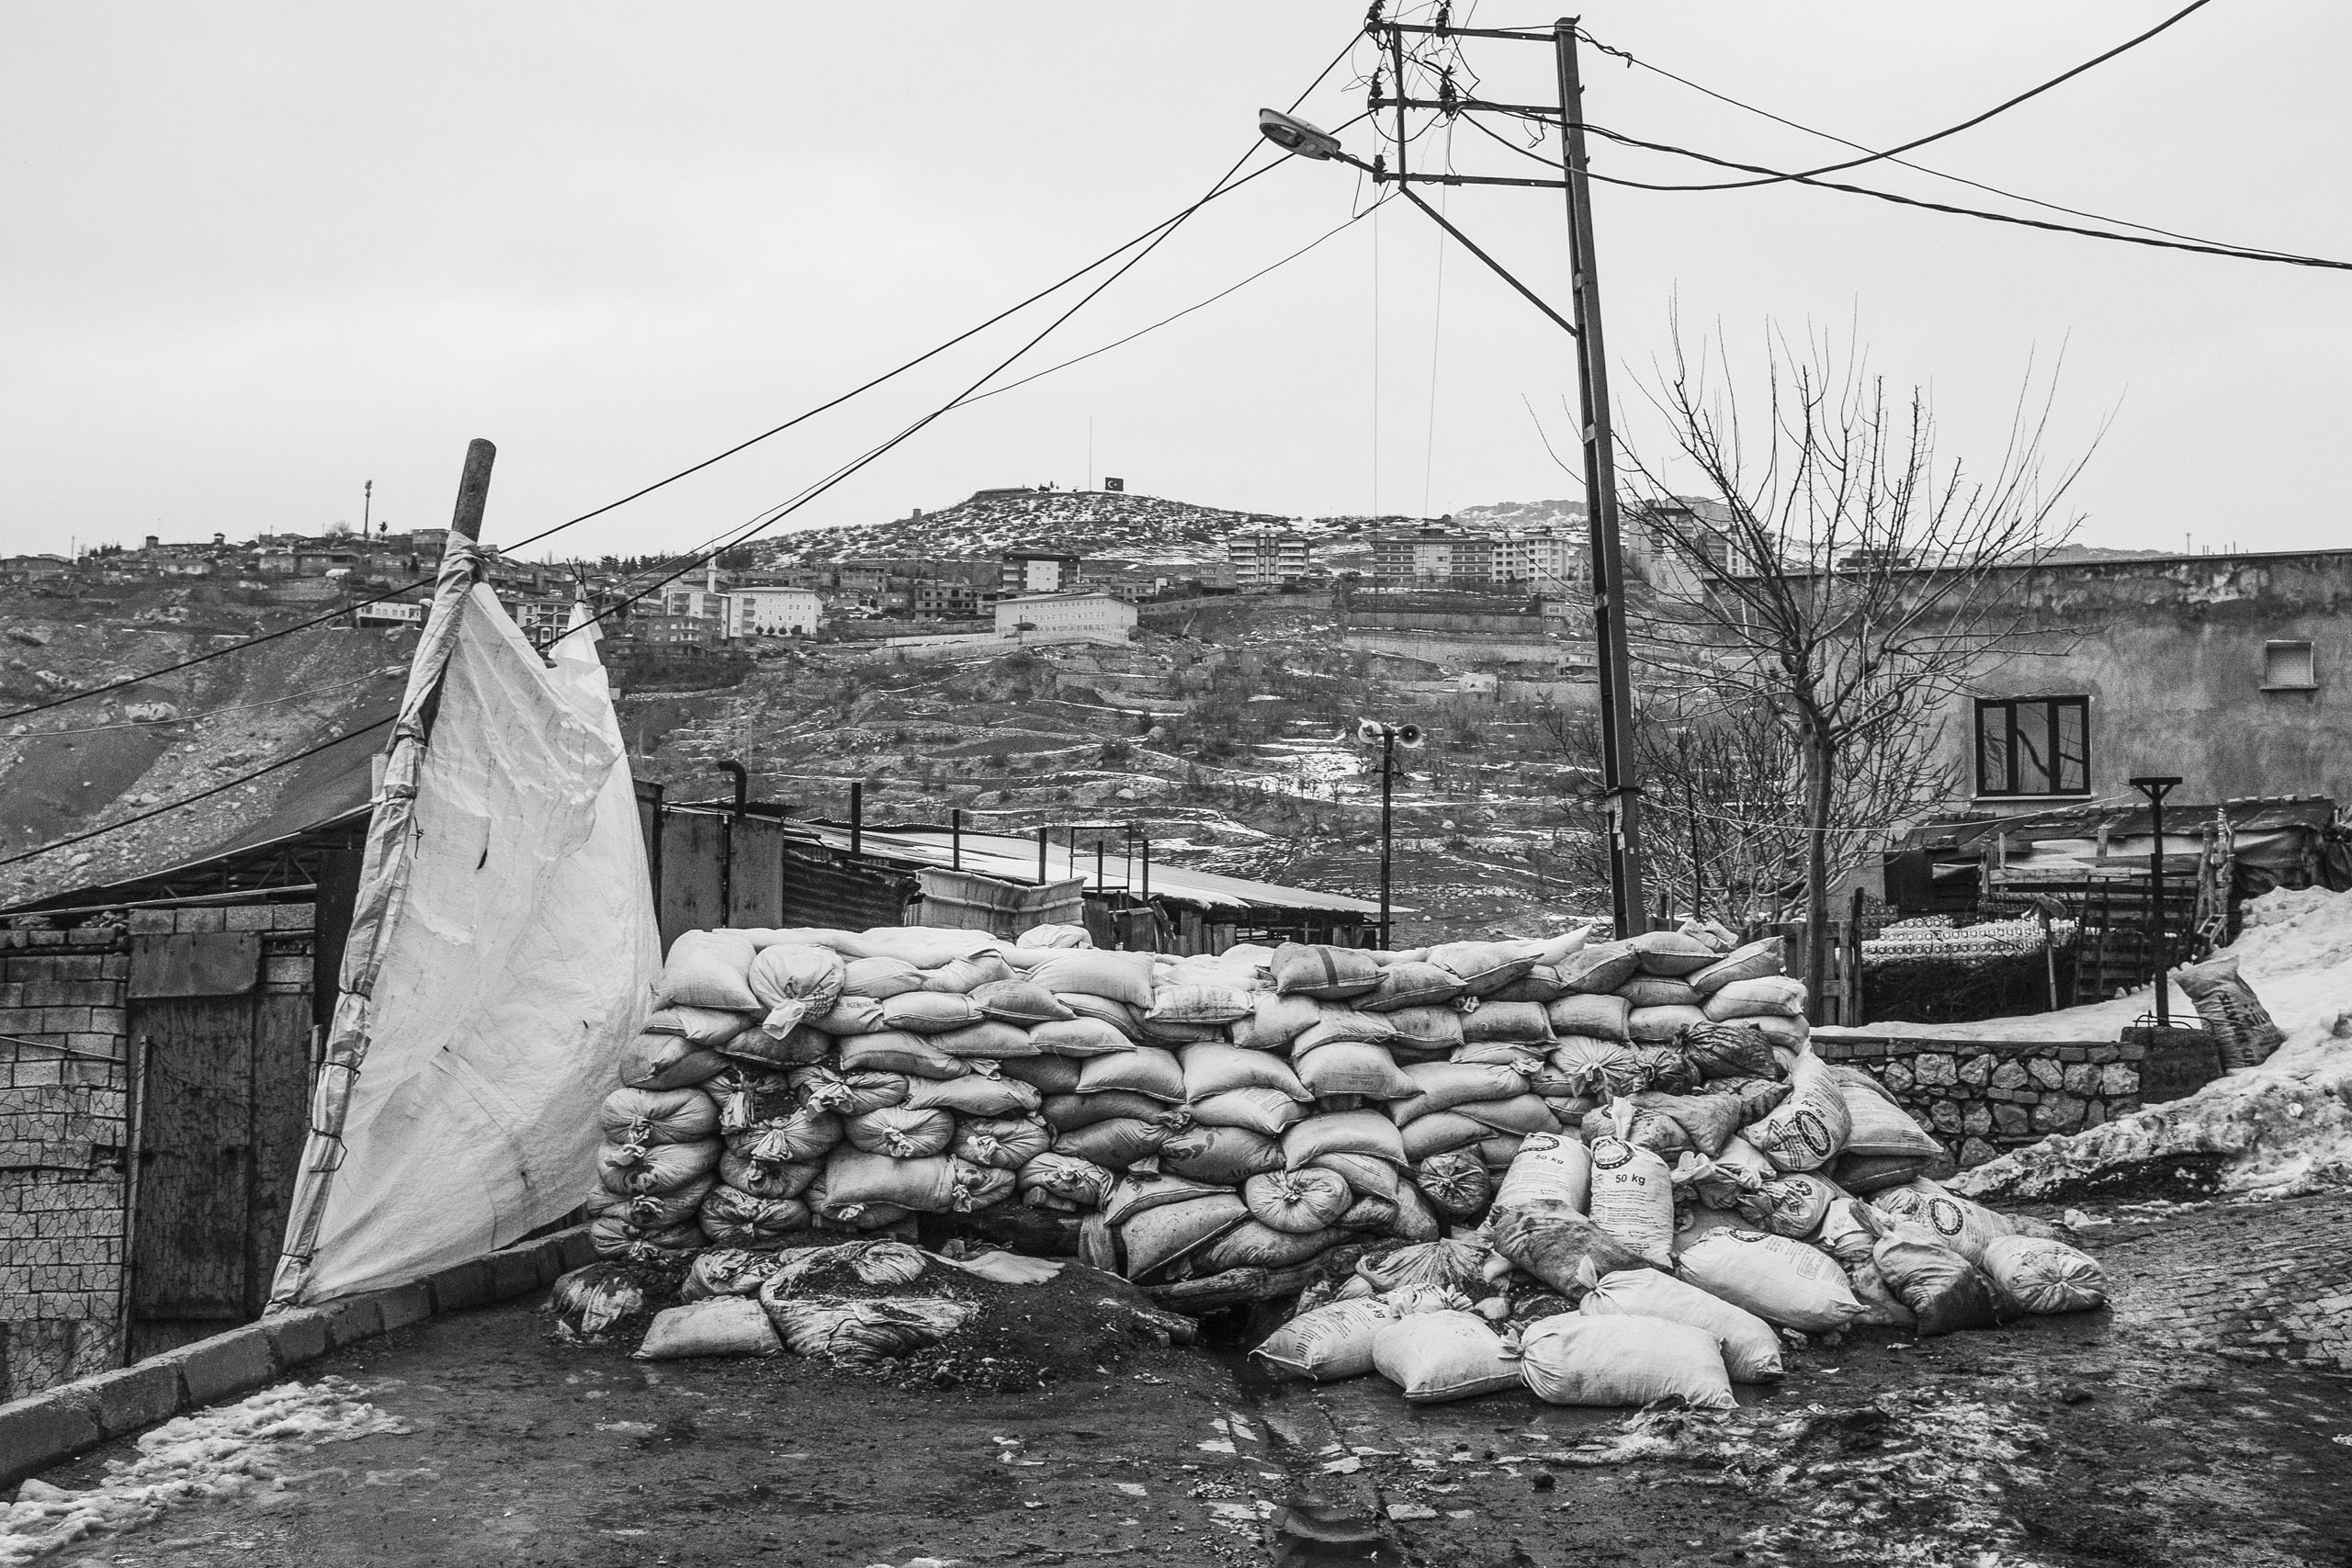 A barricade built by members of the Revolutionary Patriot Youth Movement (YDG-H), Sirnak, Turkey, Jan. 2016.